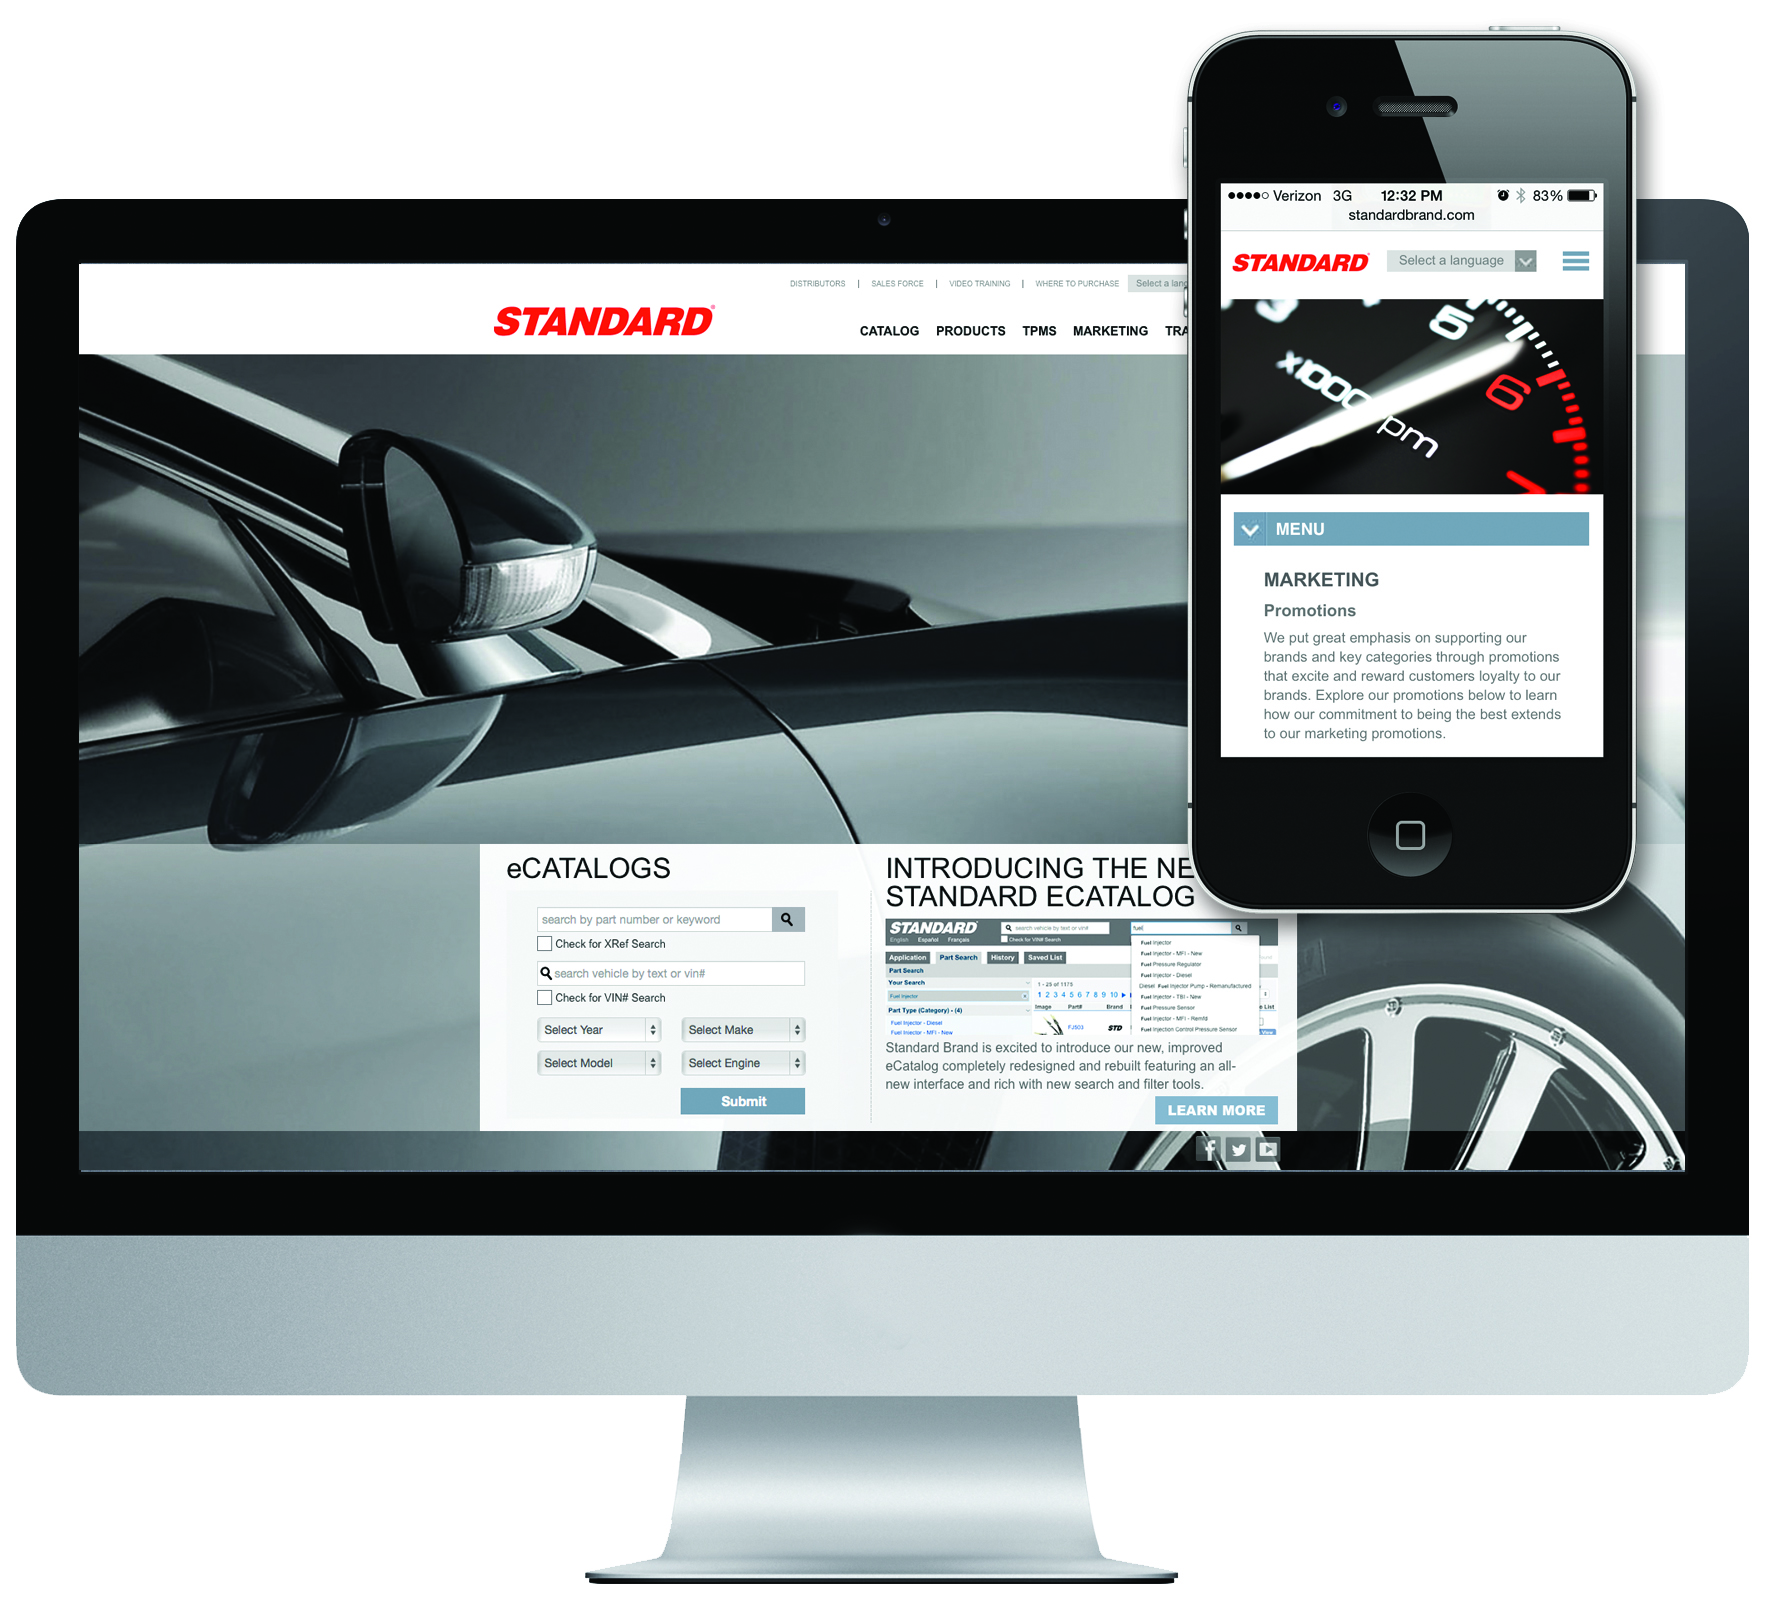 SMP redesigns brand website to deliver more content and features to any device